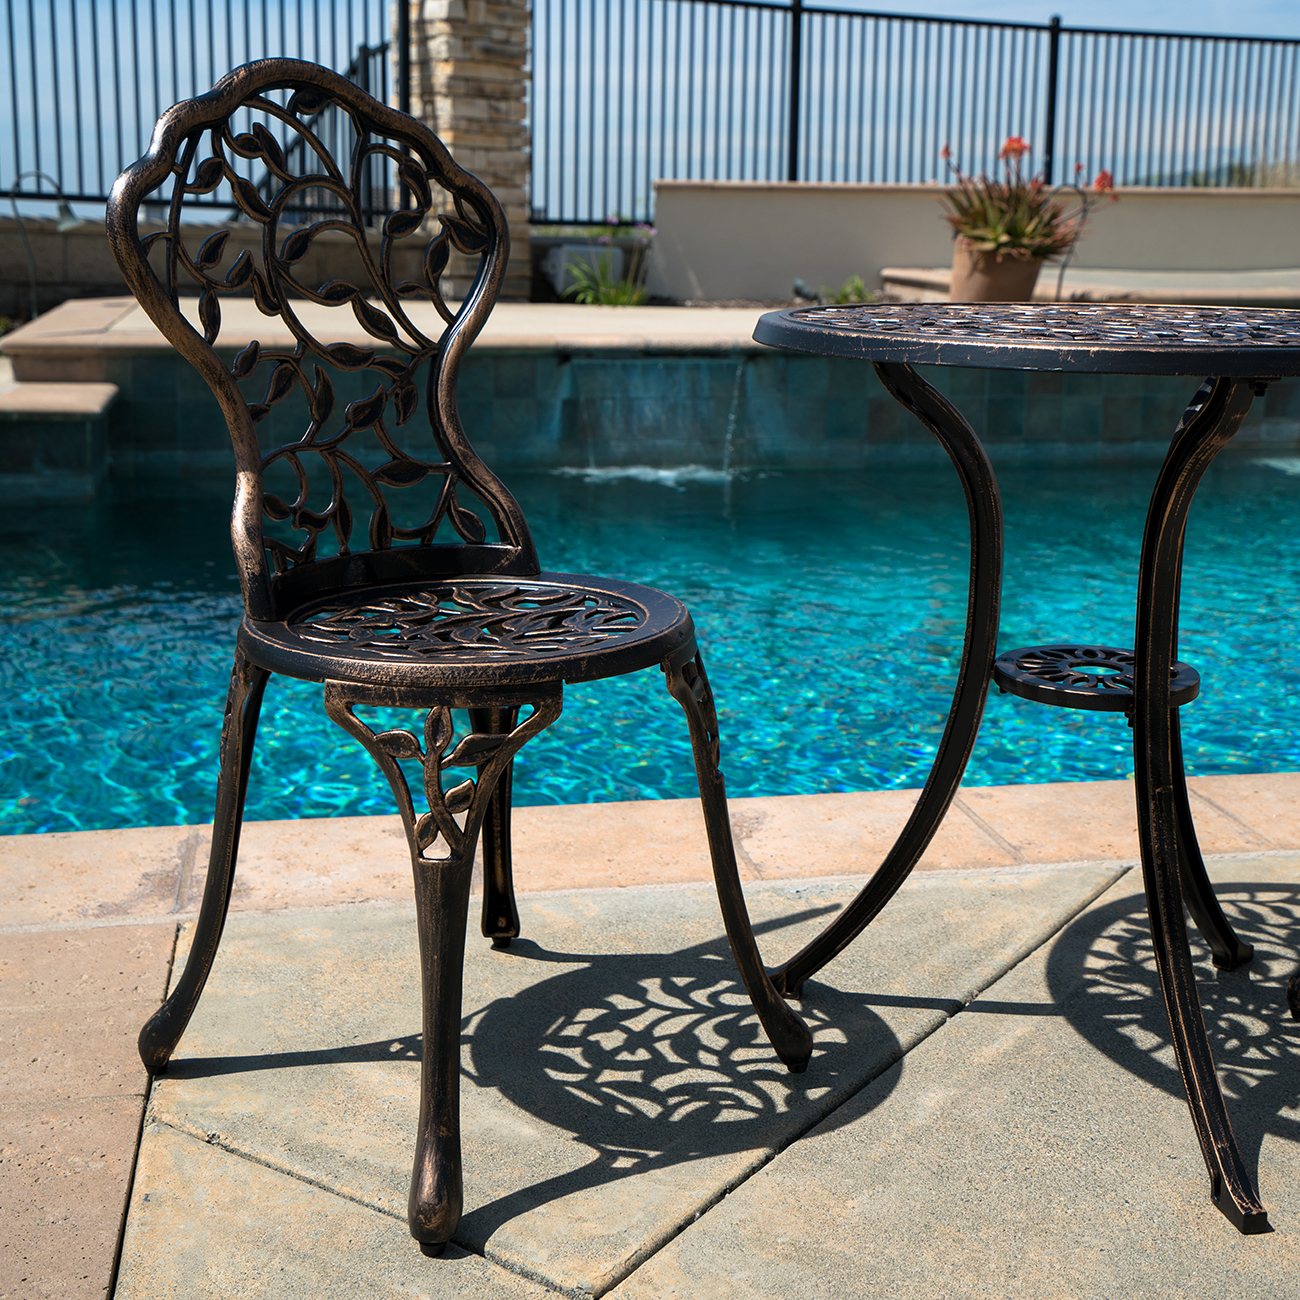 Cast Aluminum Patio Furniture Heart Pattern: 3PC Bistro Set In Antique Outdoor Patio Furniture Leaf